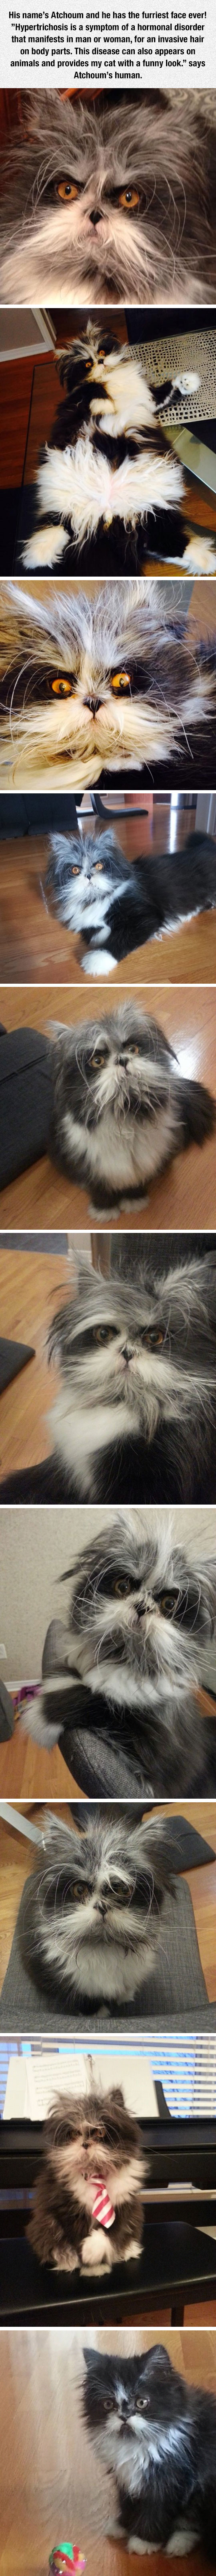 Furriest Face Ever